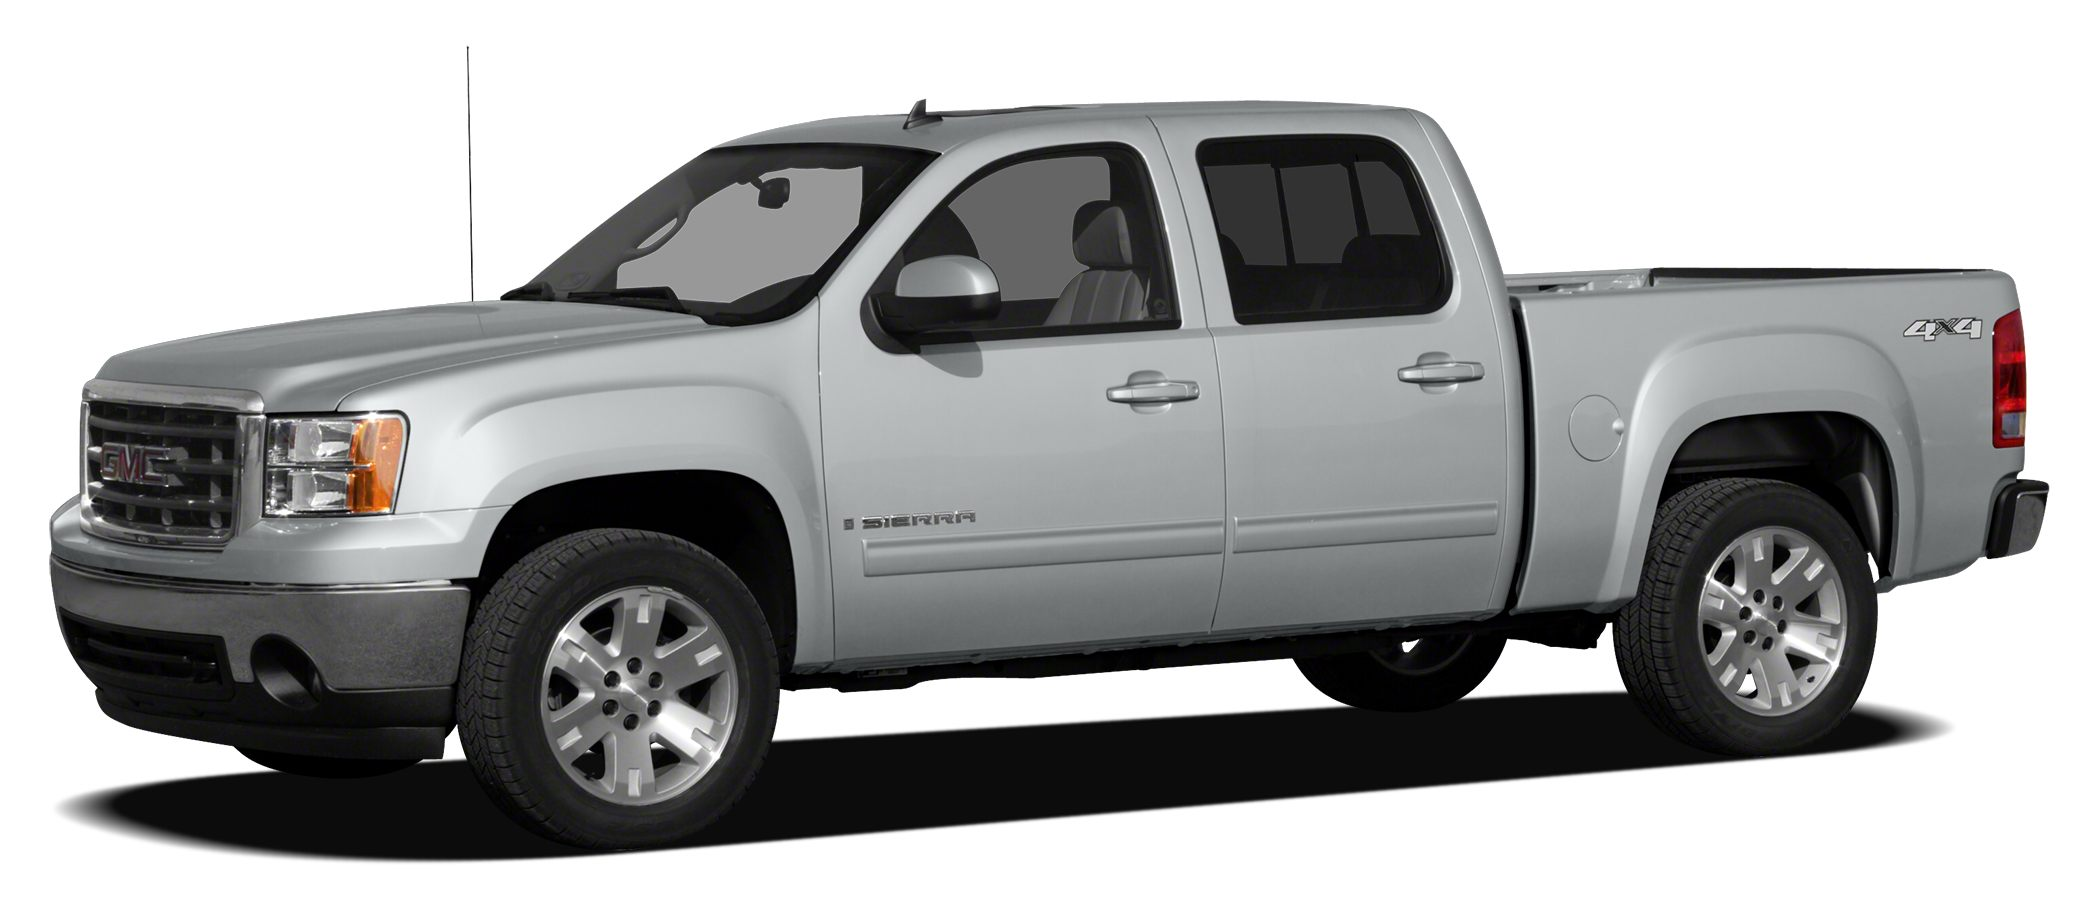 2012 GMC Sierra 1500 SLE CARFAX 1-Owner FUEL EFFICIENT 21 MPG Hwy12 MPG City Alloy Wheels SUSP